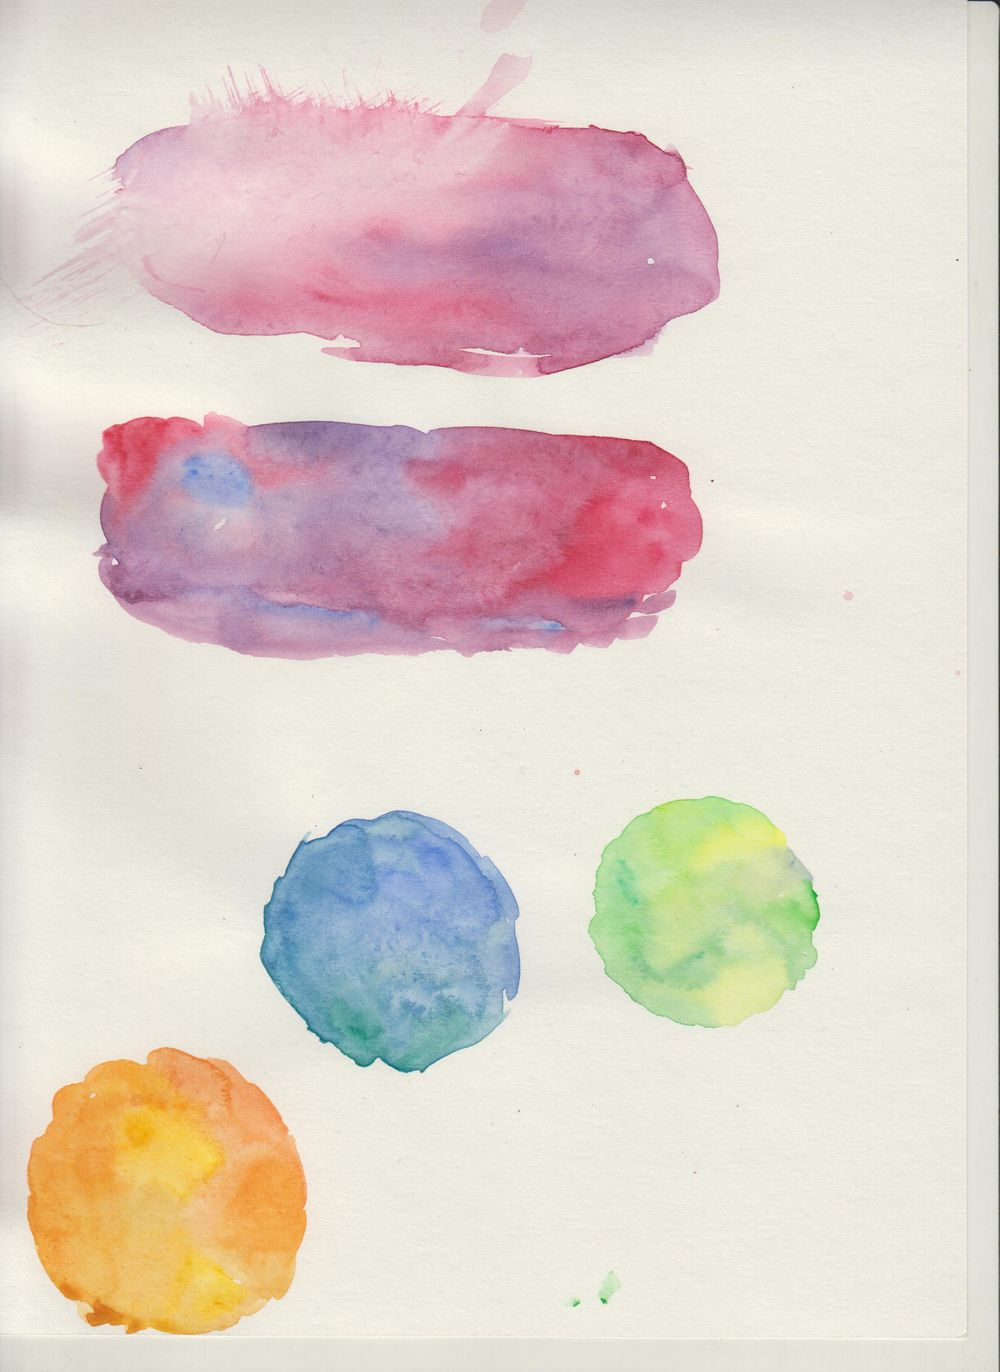 Watercolor textures - image 2 - student project